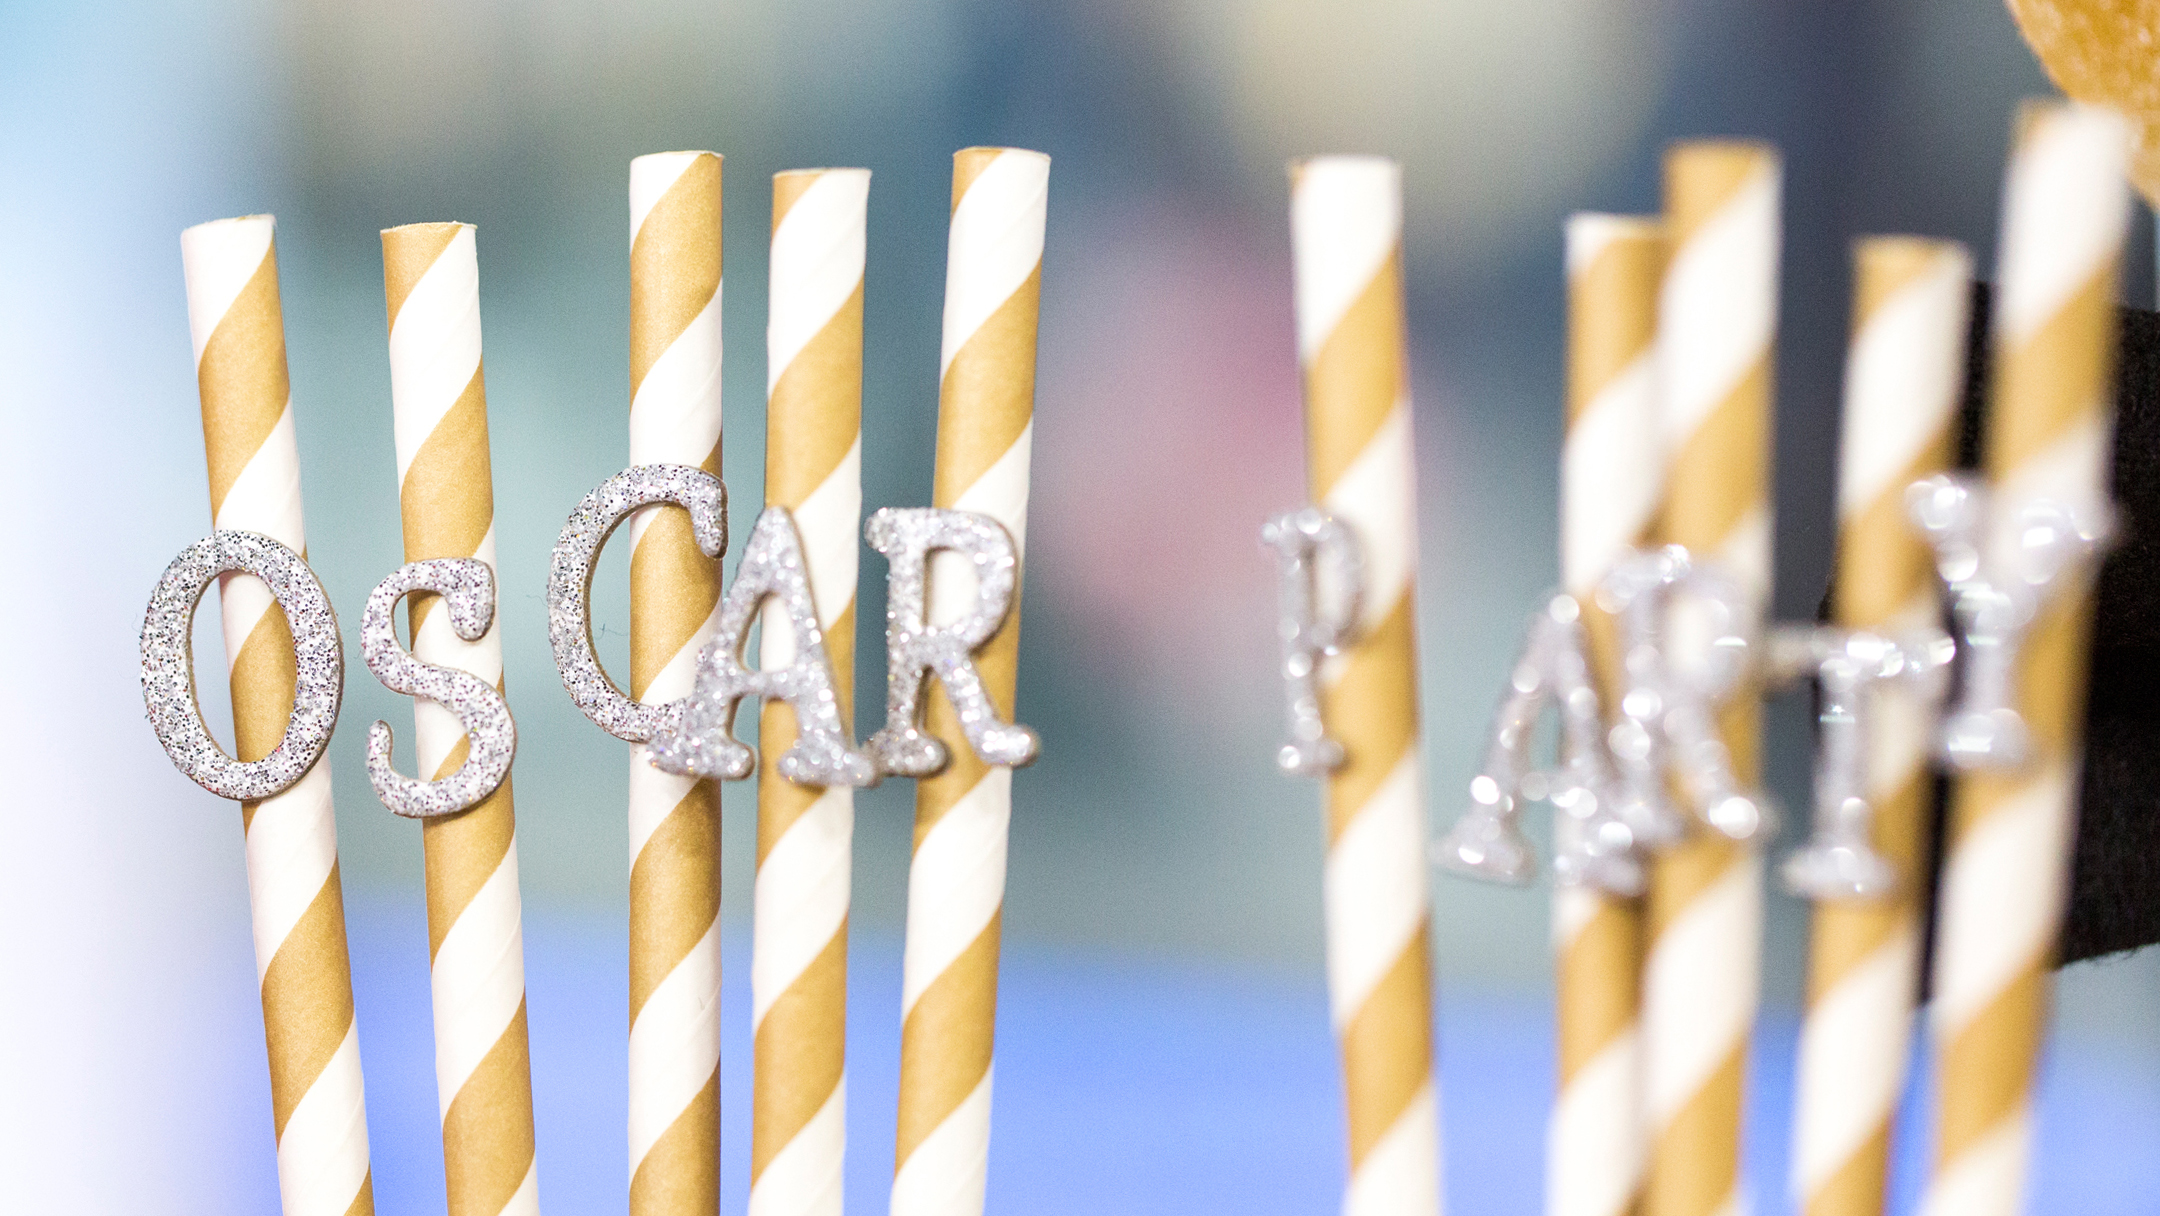 Oscars Party Diy Ideas For Your Academy Awards Bash